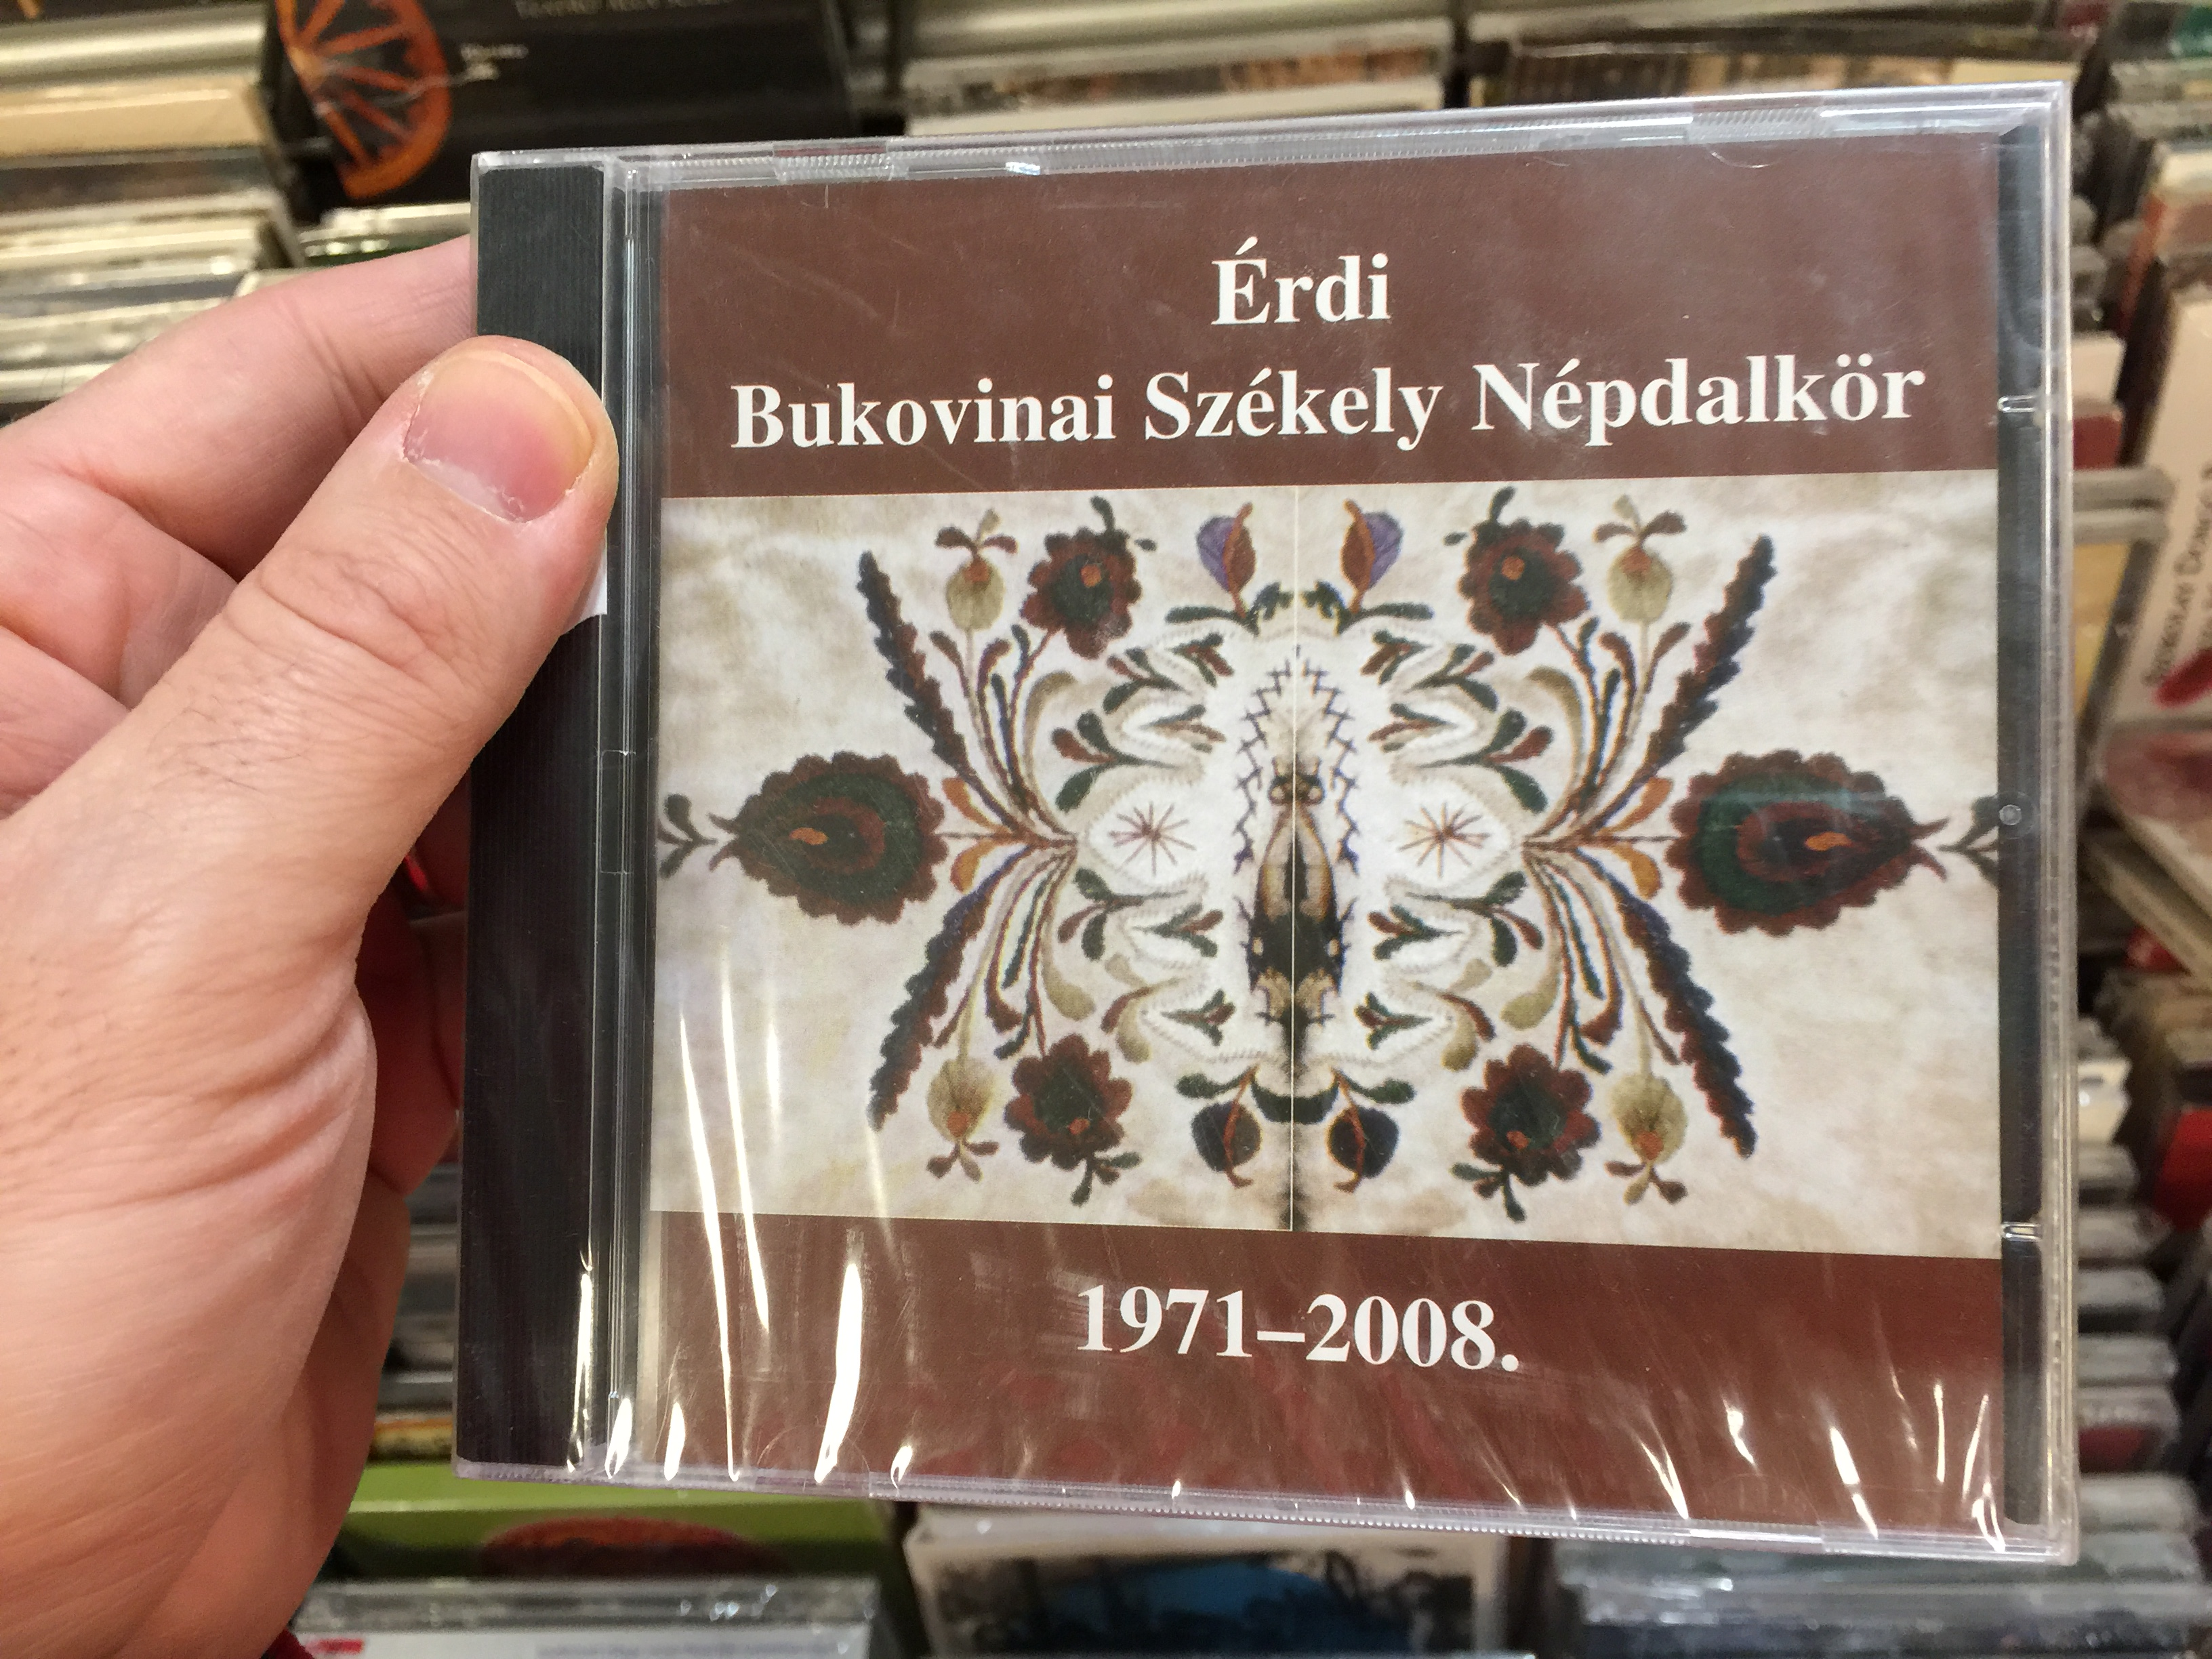 rdi-bukovinai-sz-kely-n-pdalk-r-1971-2008.-not-on-label-rdi-bukovinai-sz-kely-n-pdalk-r-self-released-audio-cd-2008-bnk-71-1-.jpg